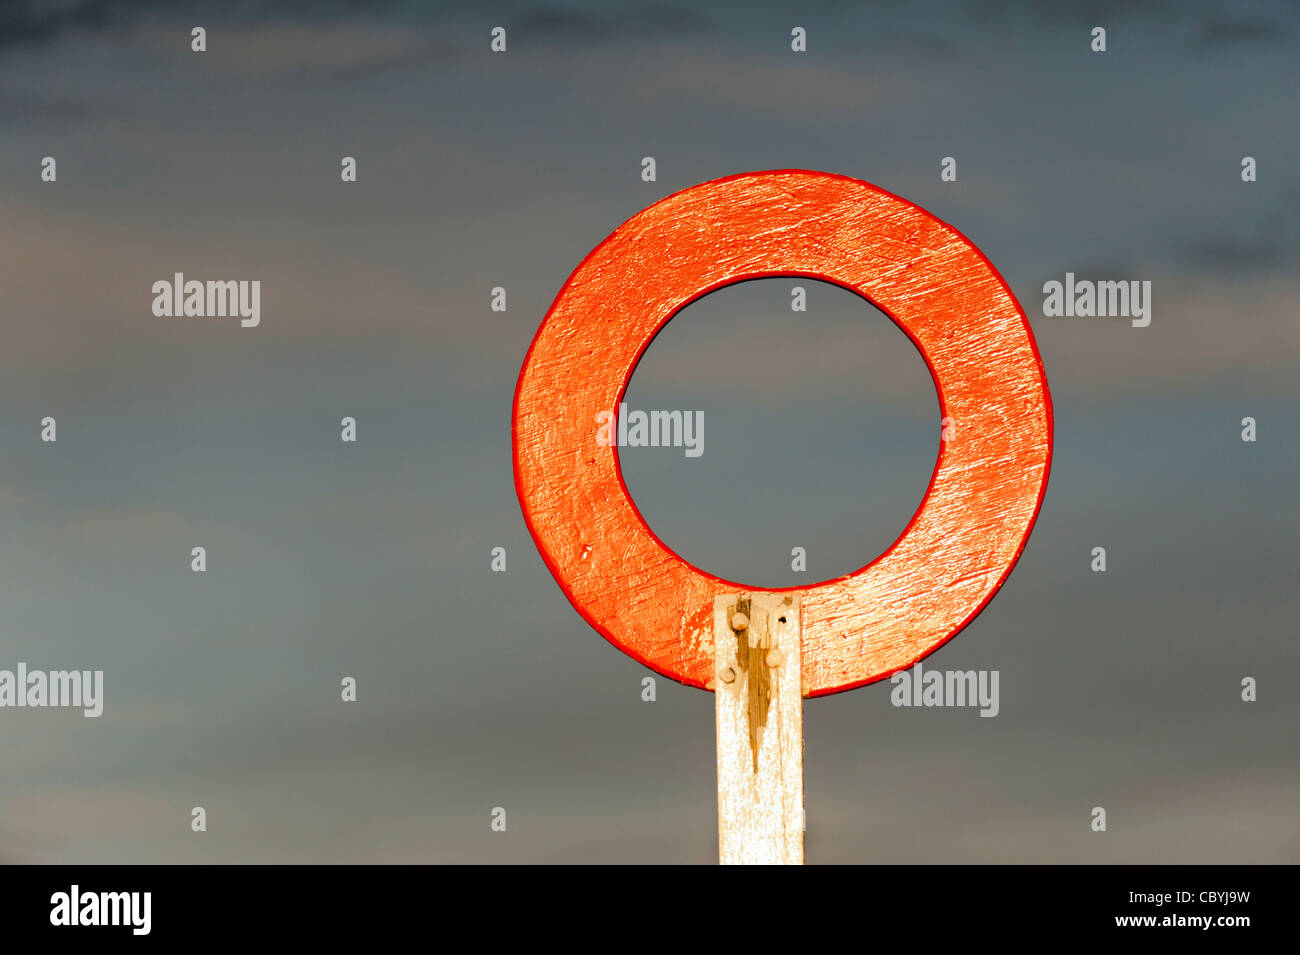 Red finishing post circle in sunshine against a stormy sky - Stock Image